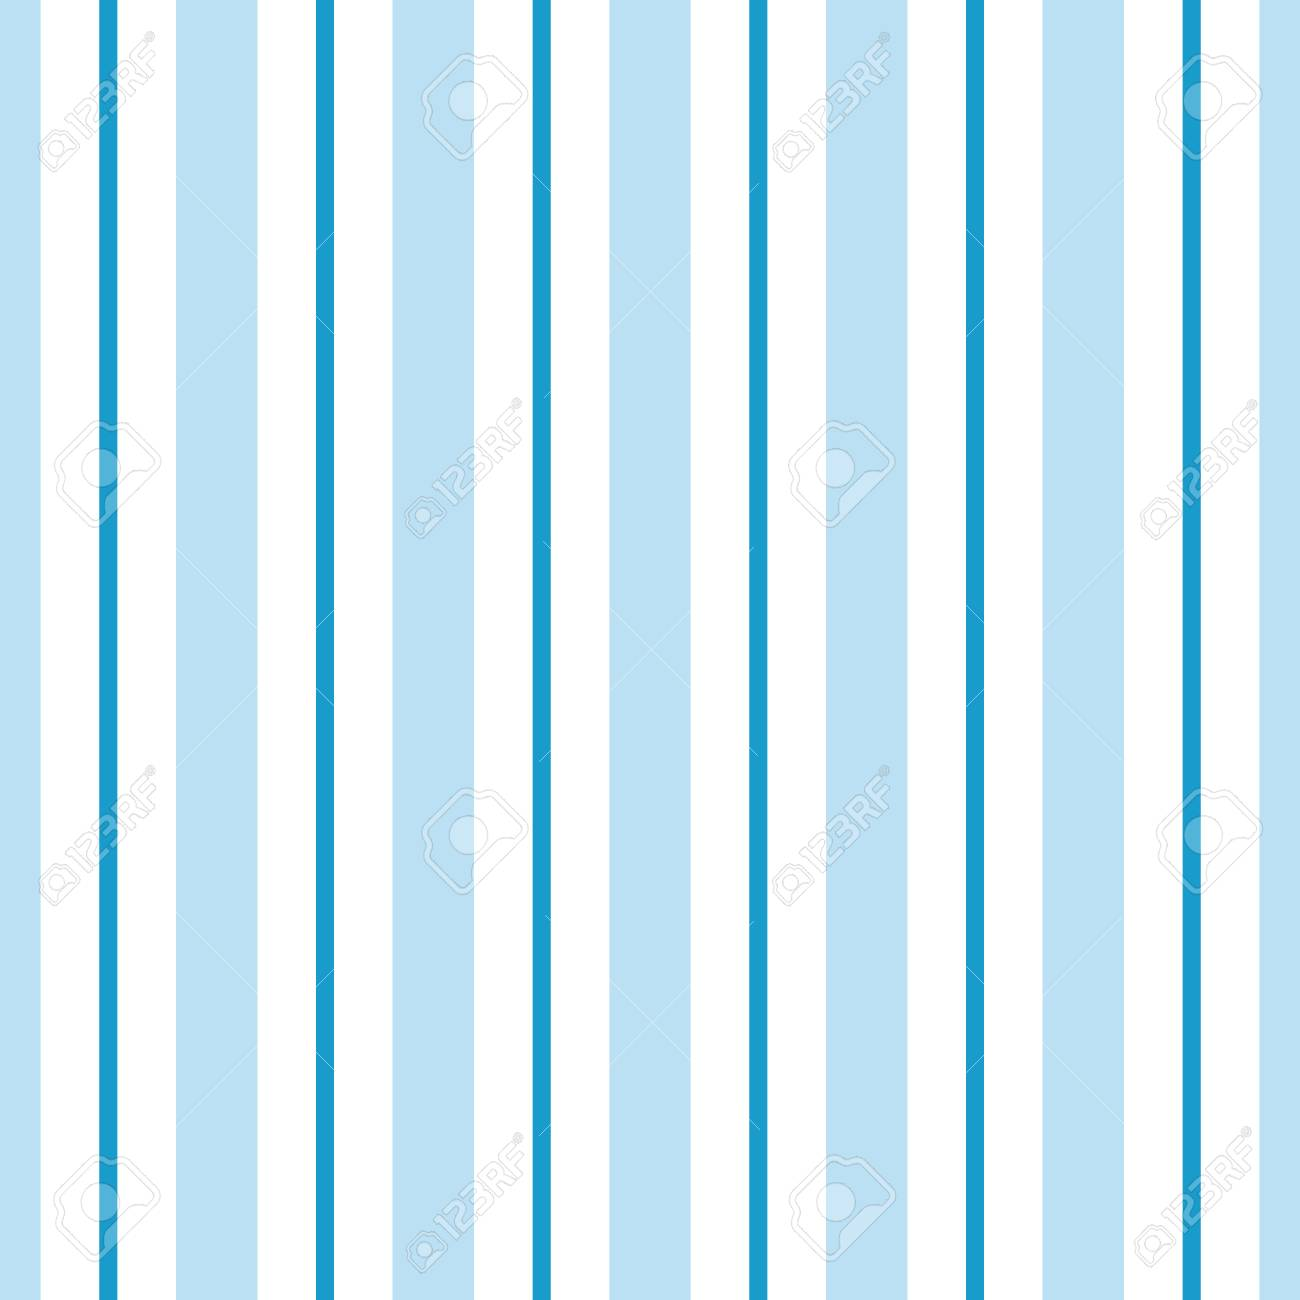 Vector Seamless Pattern With Blue And Grey Stripes On White Background Royalty Free Cliparts Vectors And Stock Illustration Image 83420000